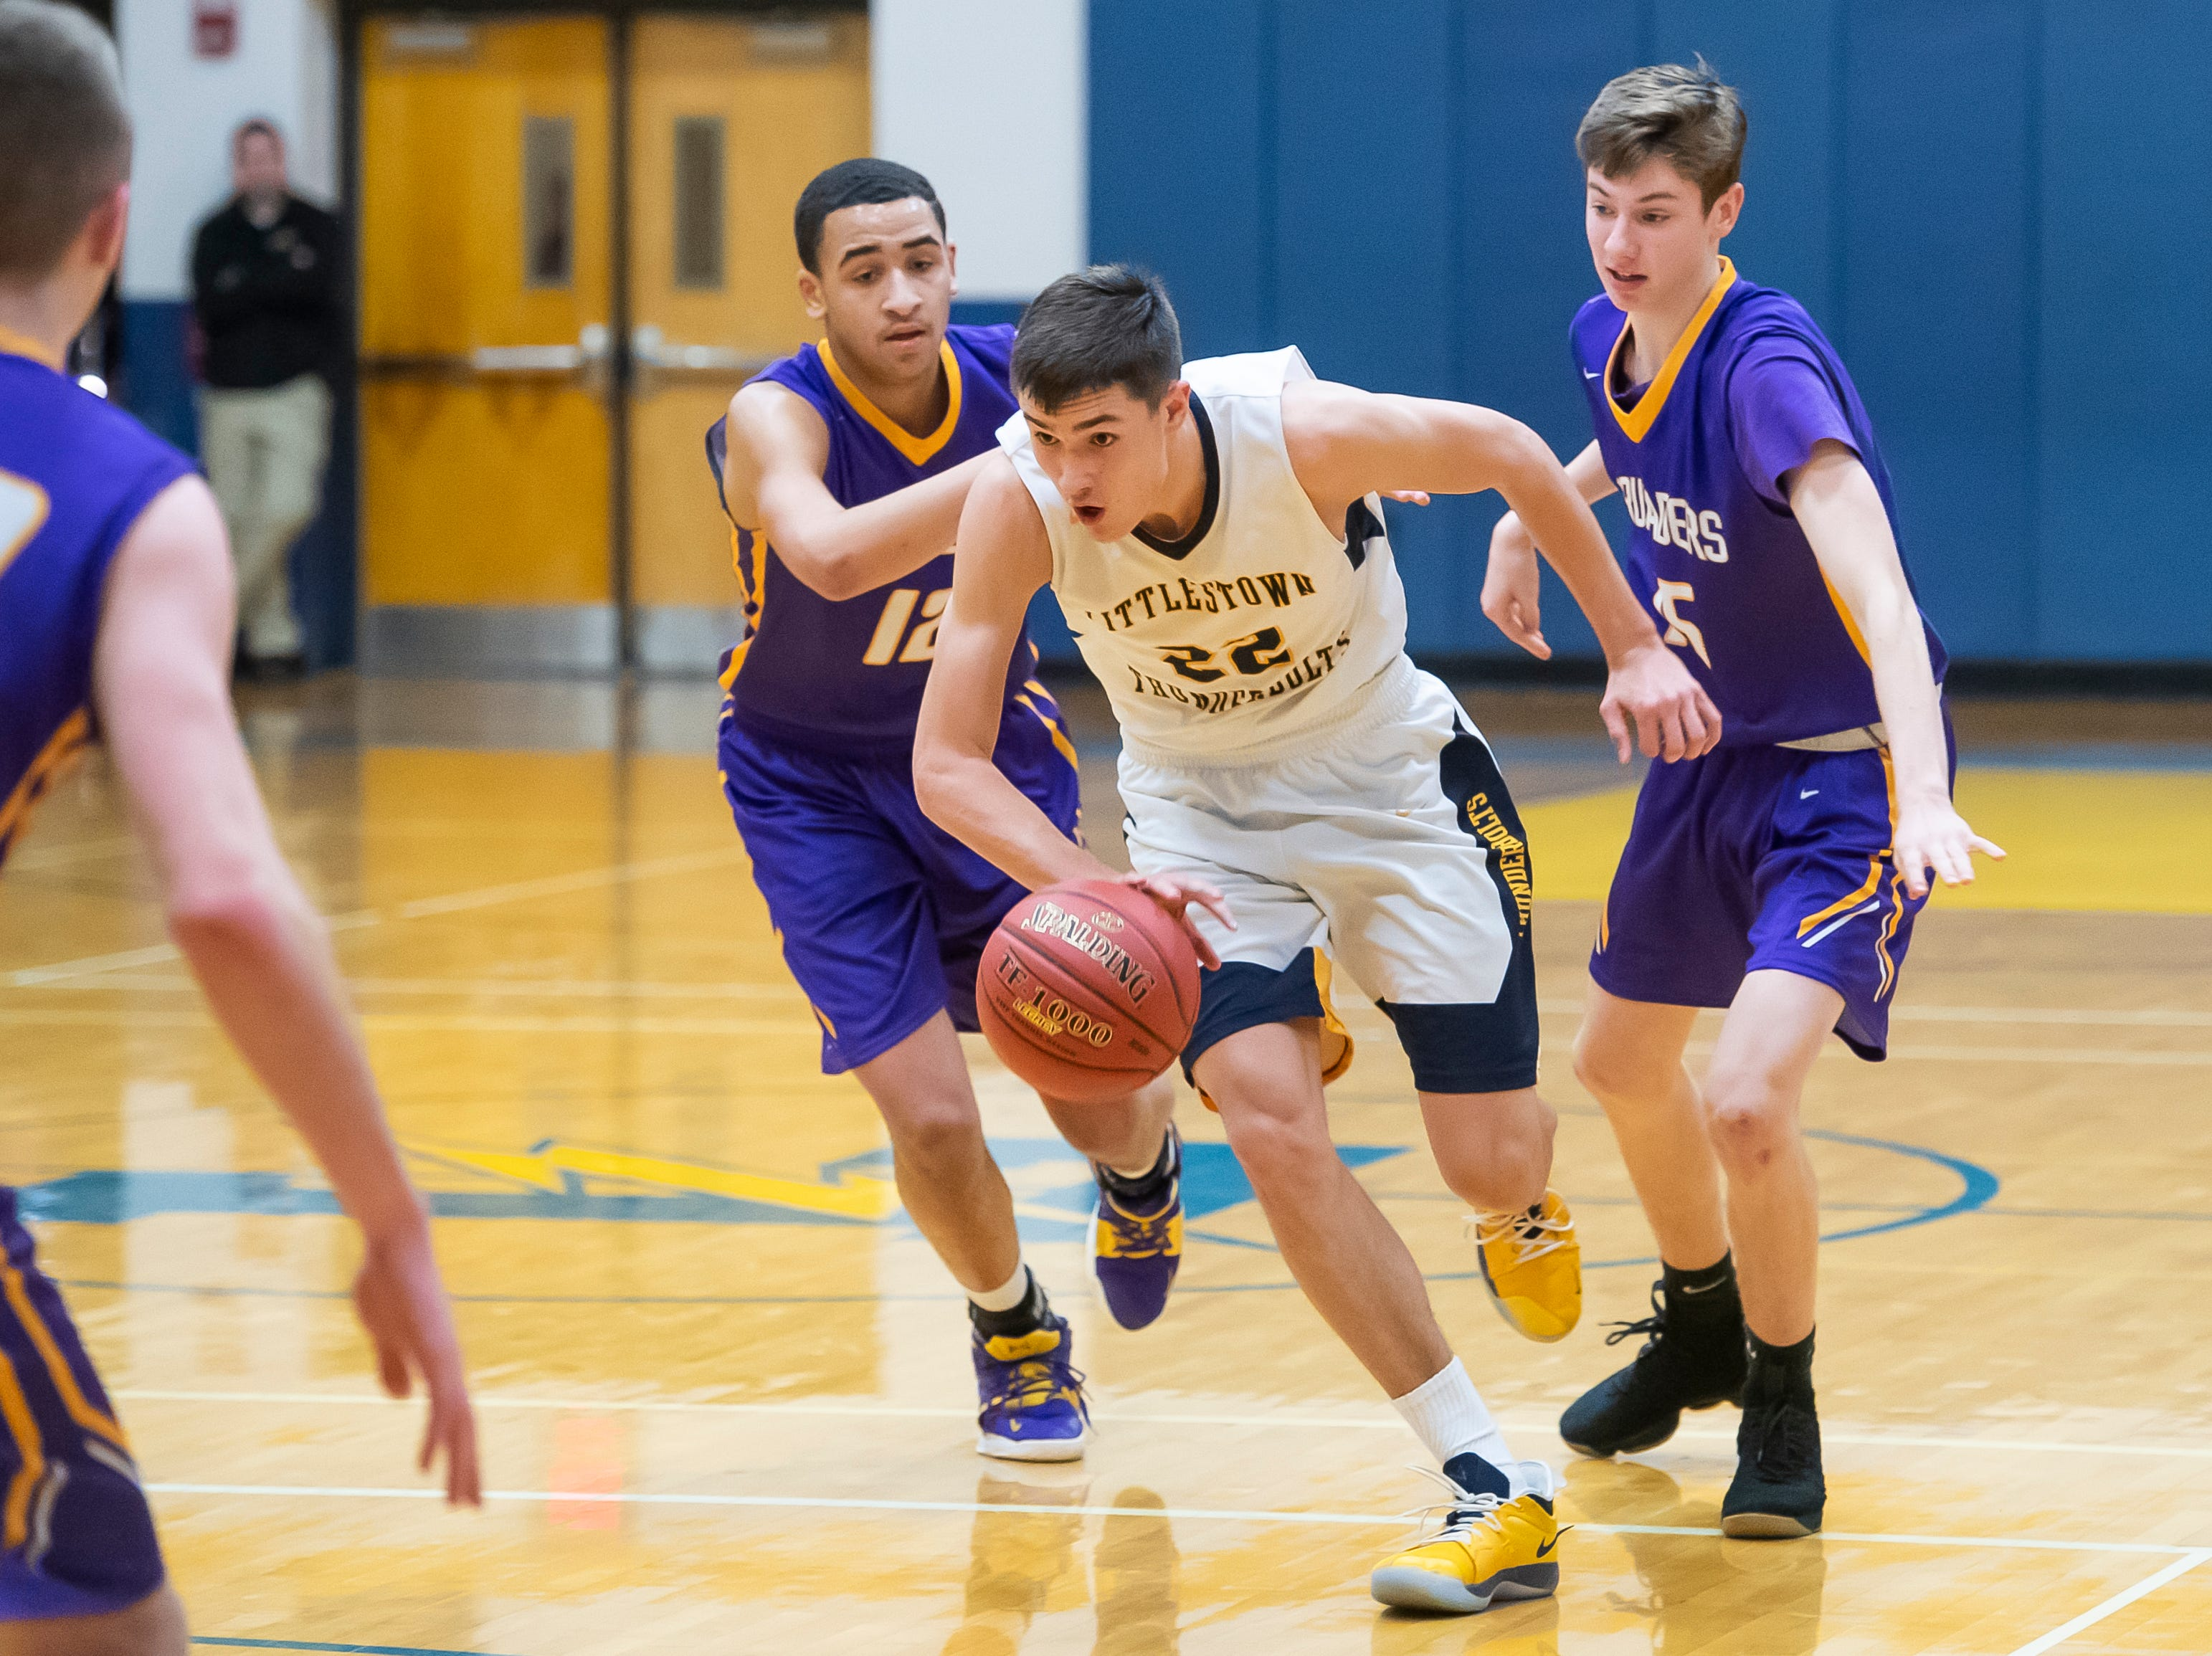 Littlestown's Logan Collins dribbles through Lancaster Catholic's Dwayne Caine (12) and Ross Conway (15) in the quarterfinals of the District 3 4-A playoffs Thursday, February 21, 2019. The Bolts fell 60-51.